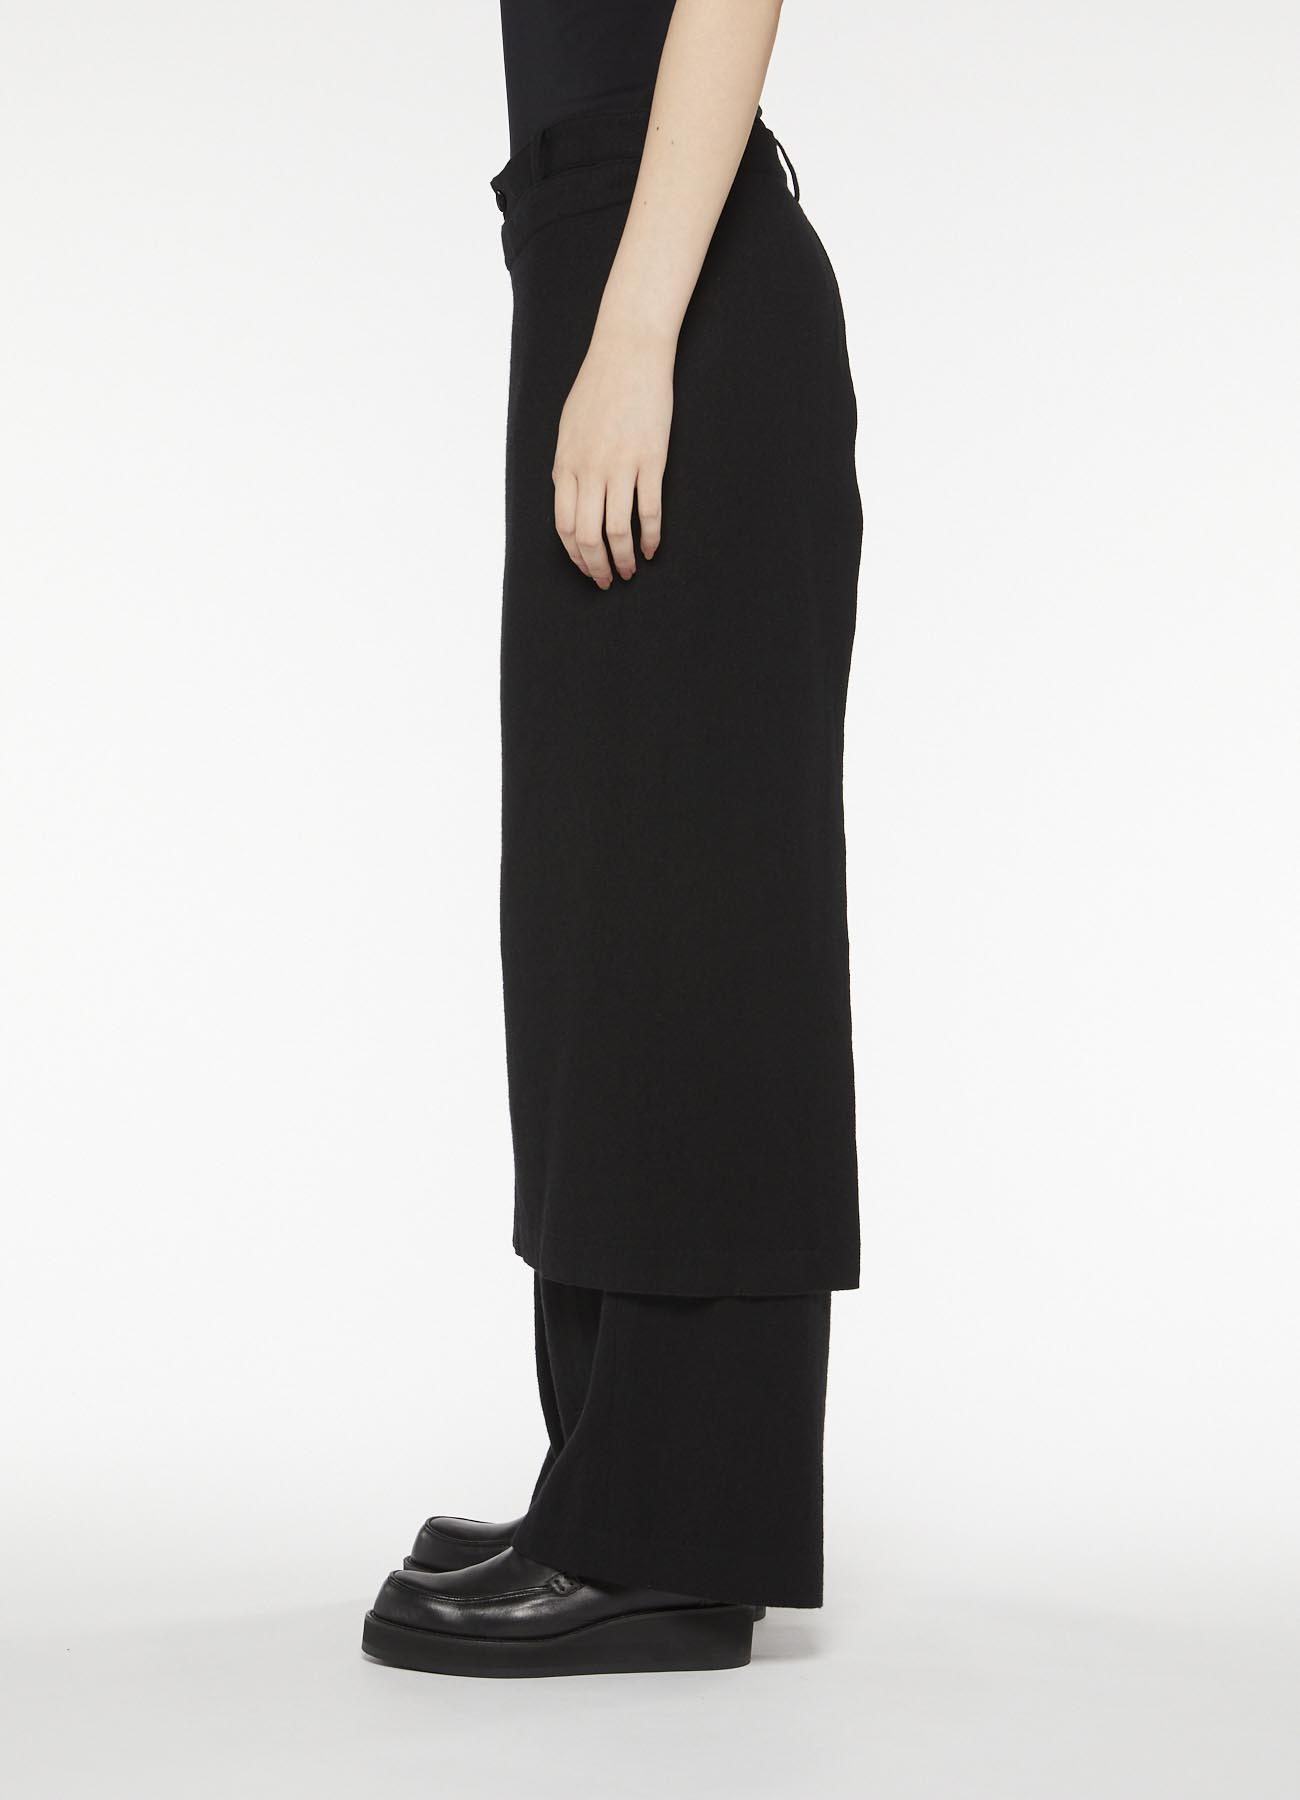 RISMATbyY's YARN DYED MODAL WOOL TWILL COMBI WIDE PANTS